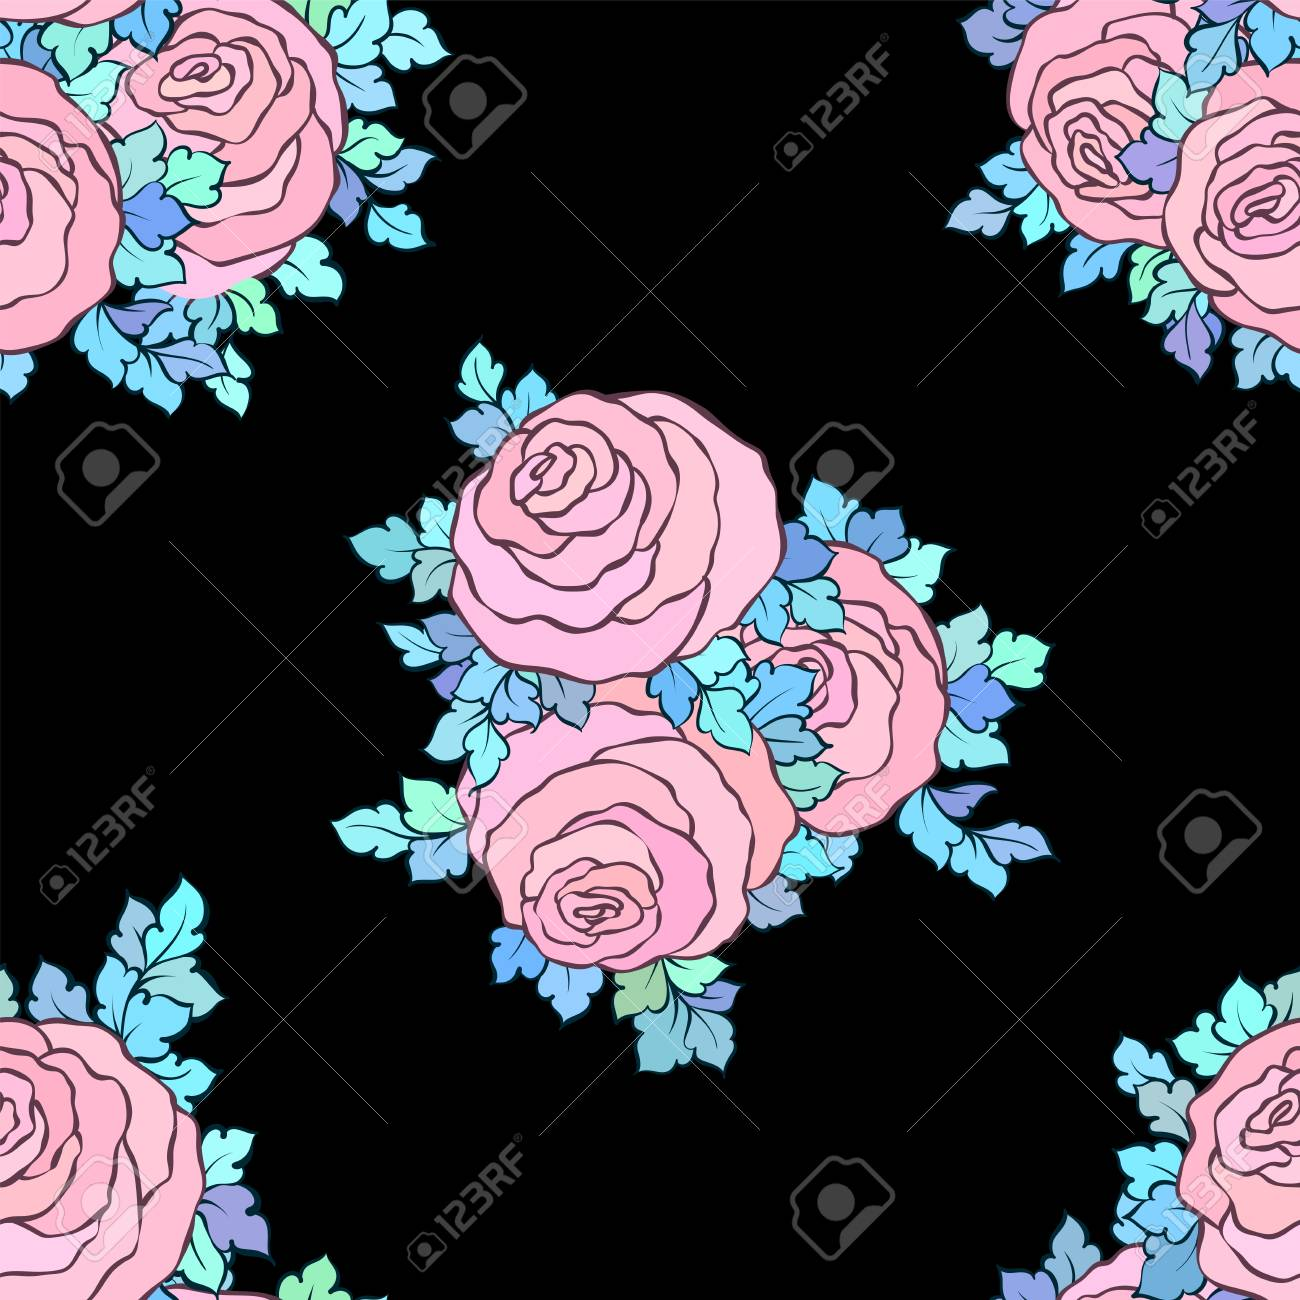 Floral Decorative Bright Wallpaper With Cute Roses Seamless Royalty Free Cliparts Vectors And Stock Illustration Image 85759859